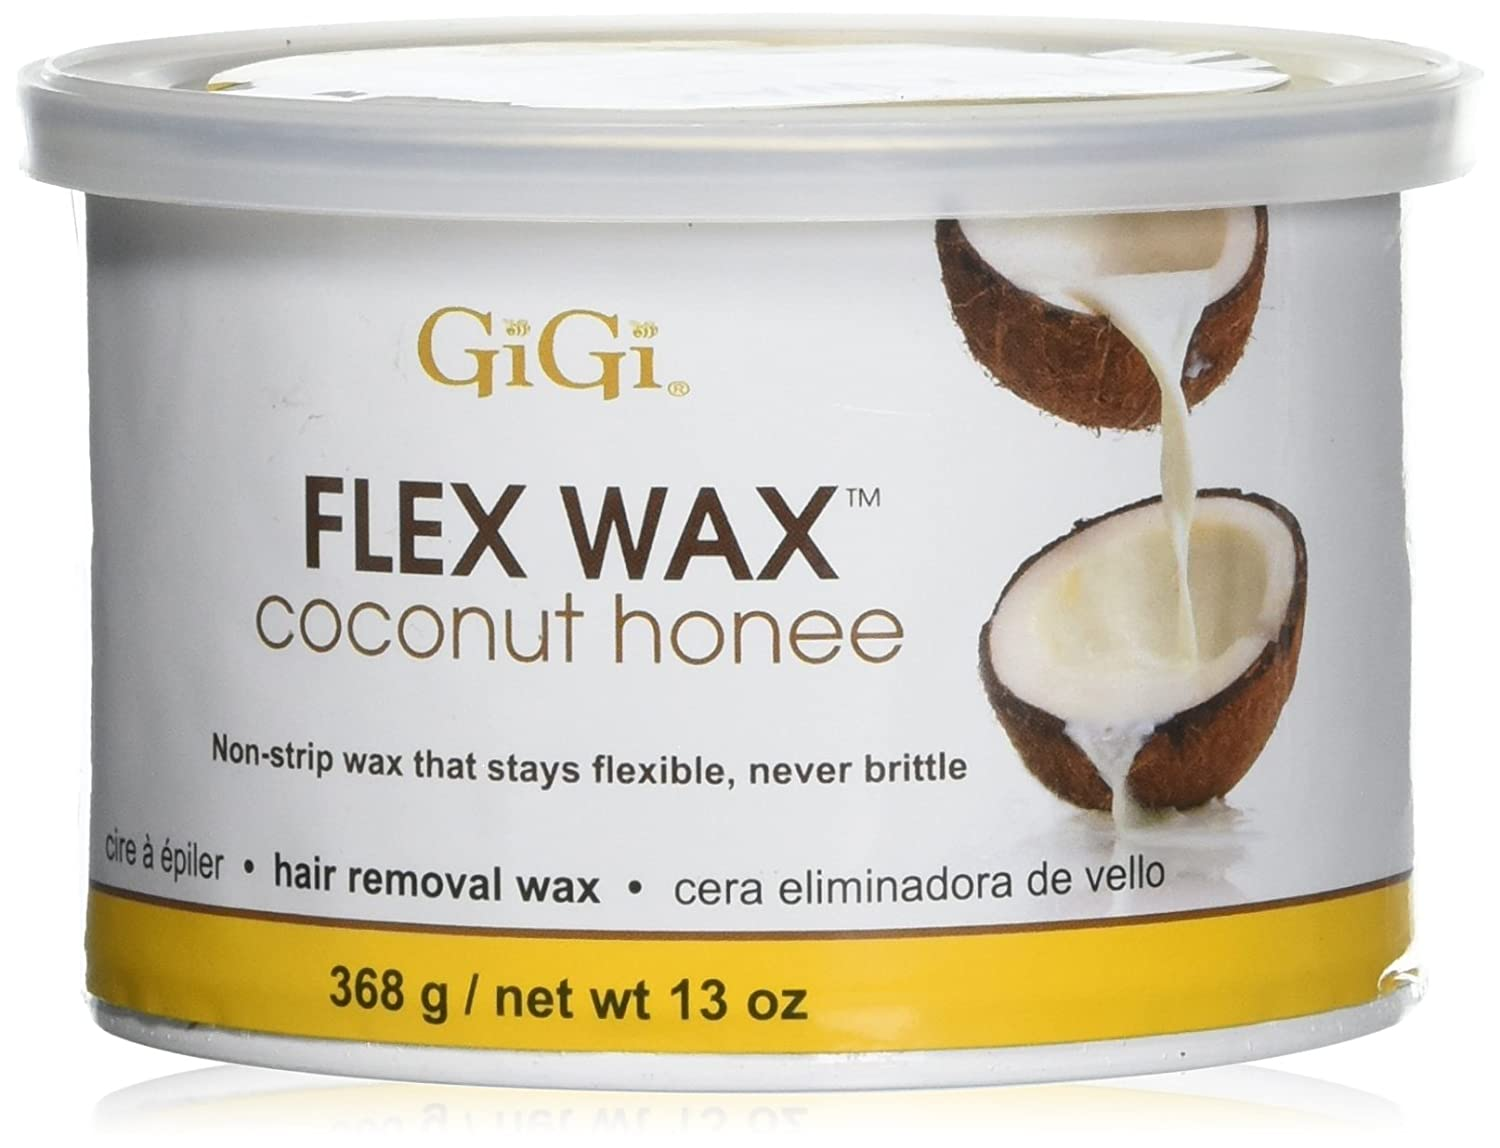 GIGI flex wax coconut honee #0349 (13oz/368g)